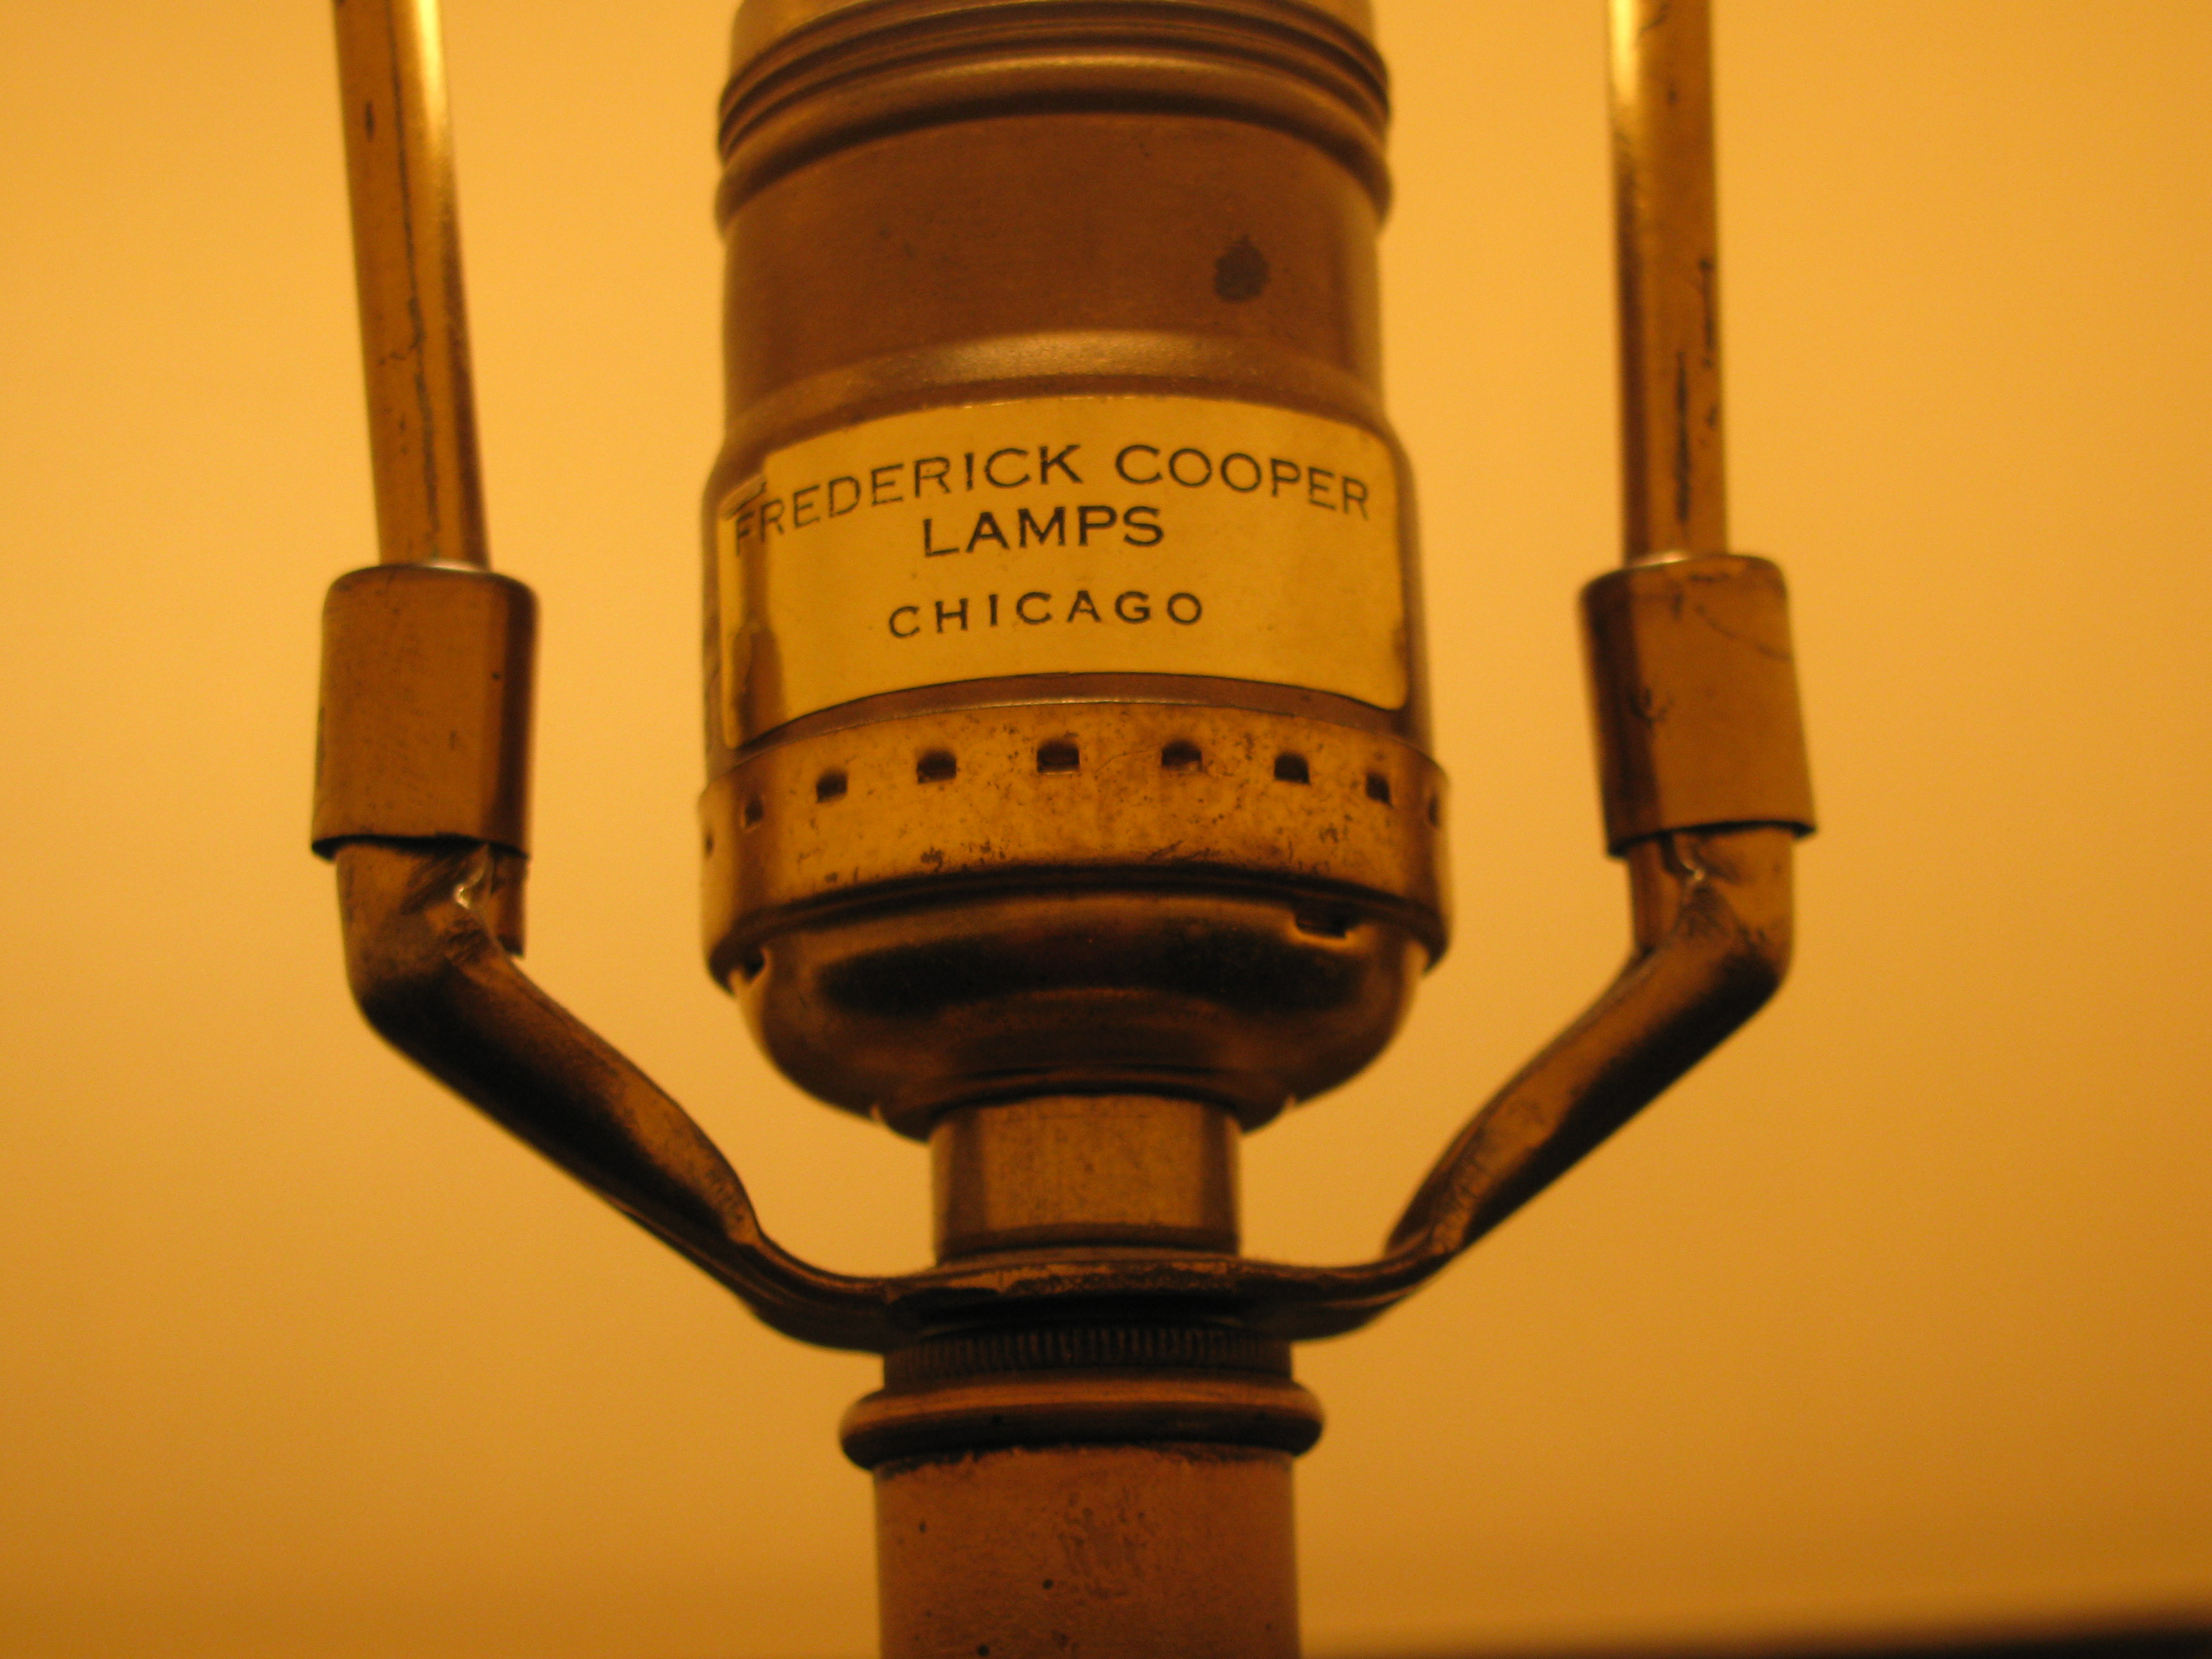 vintage frederick cooper lamps photo - 1